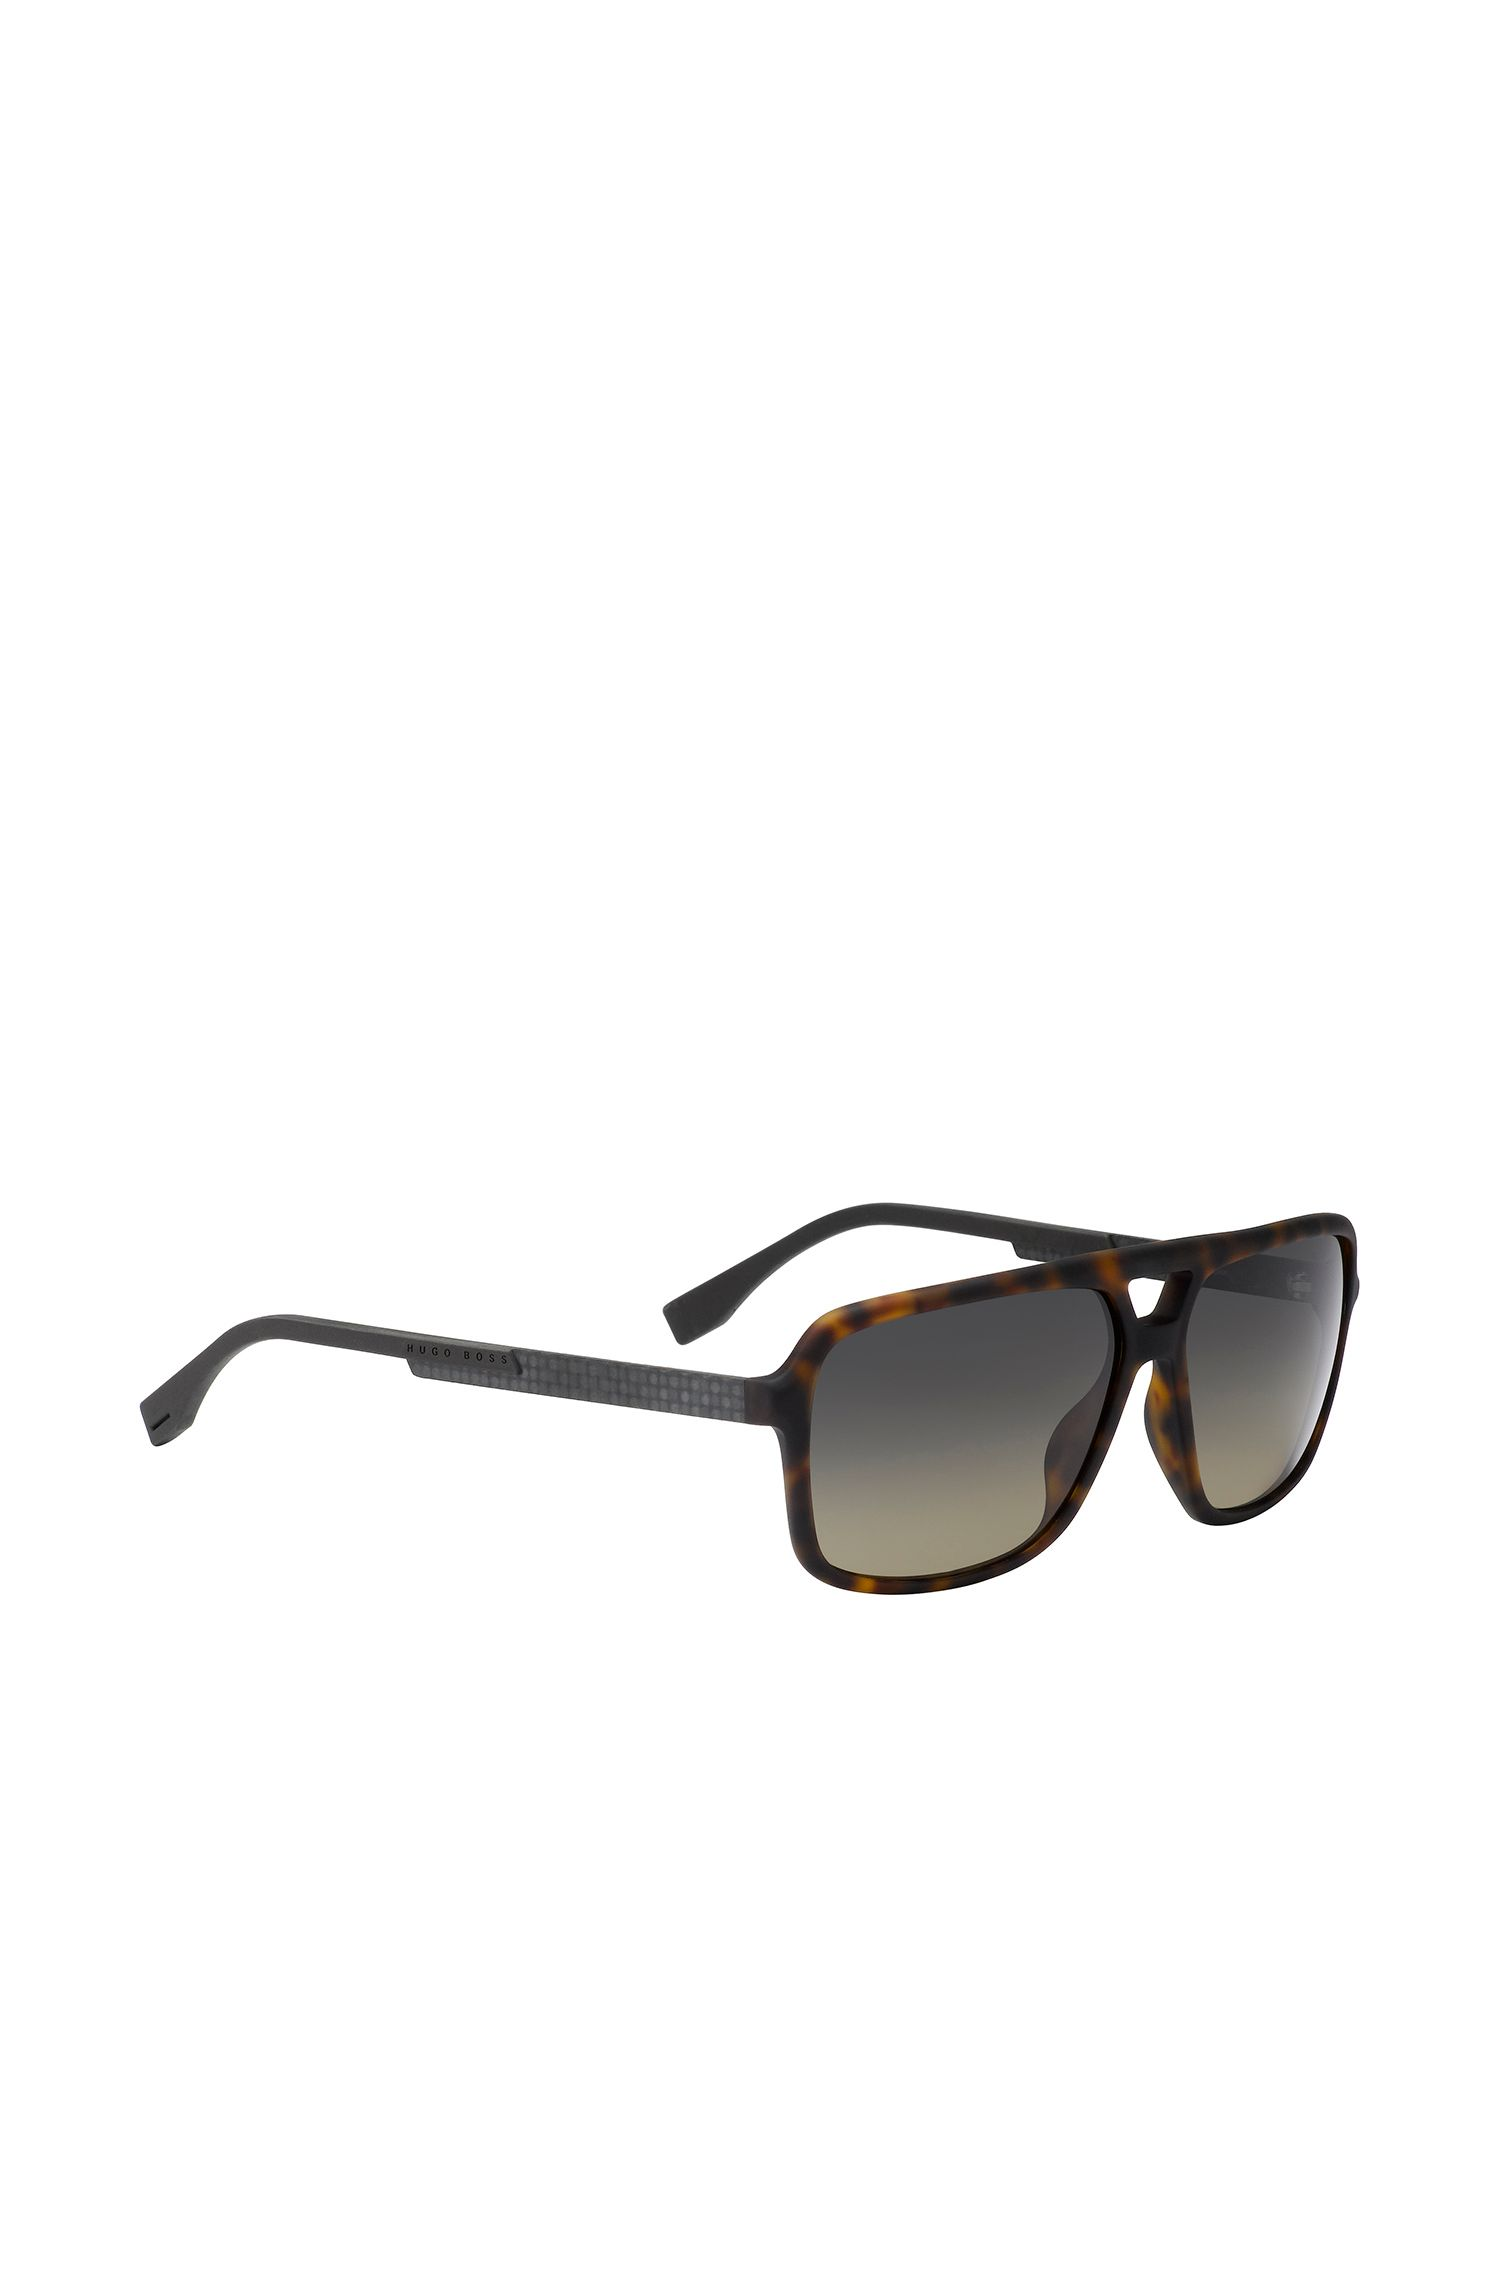 Green Grey Lens Navigator Sunglasses | BOSS 0772S